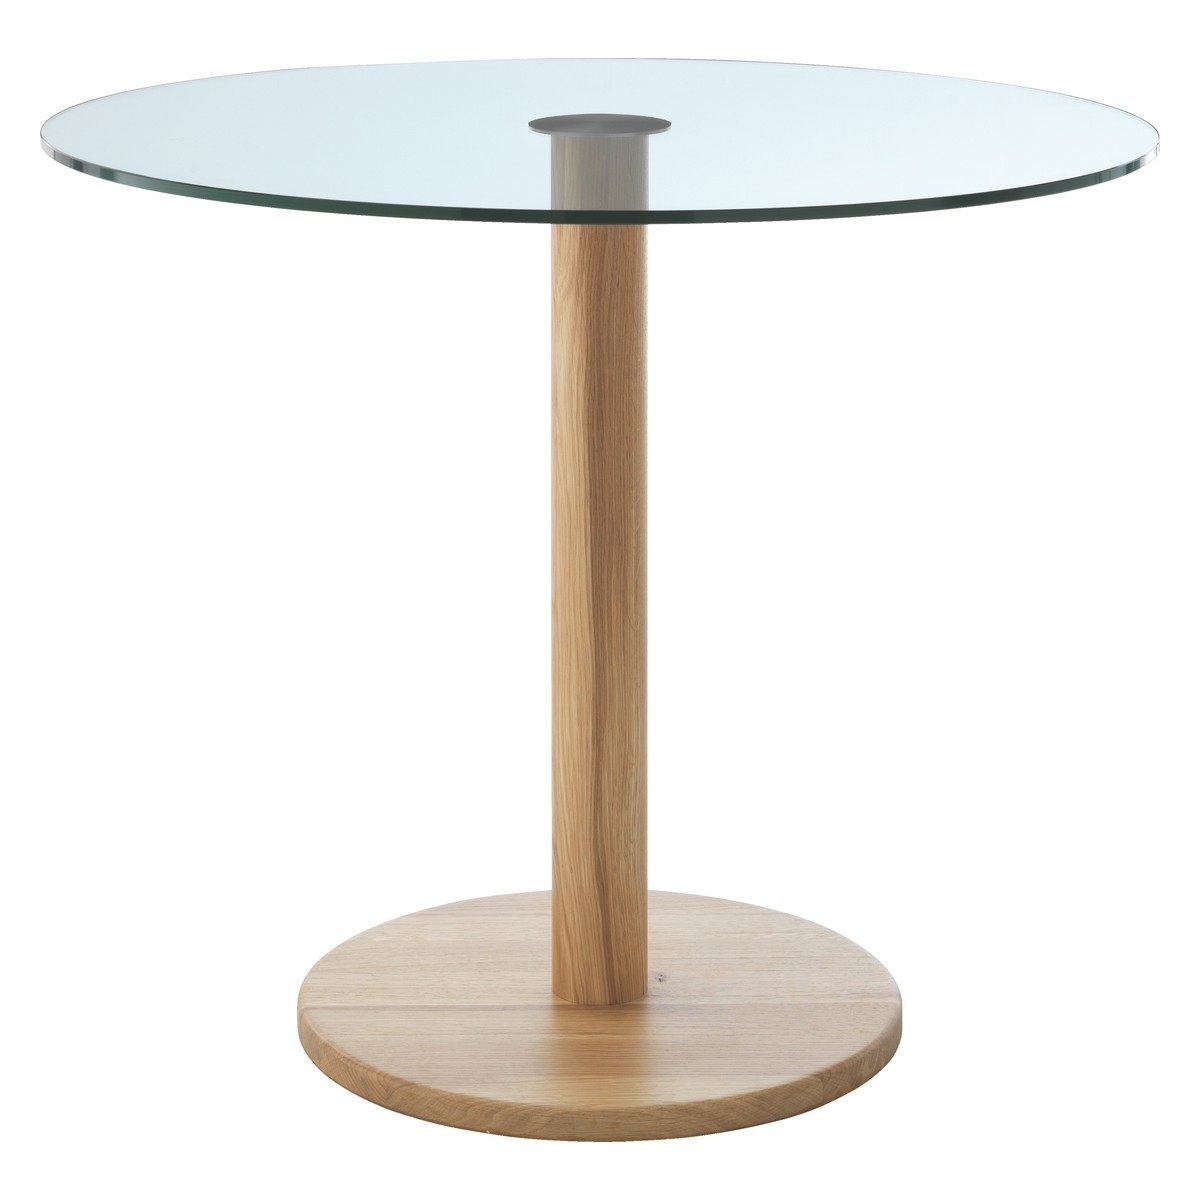 Buy Now At Habitat Uk With Latest Round Glass And Oak Dining Tables (Gallery 11 of 25)